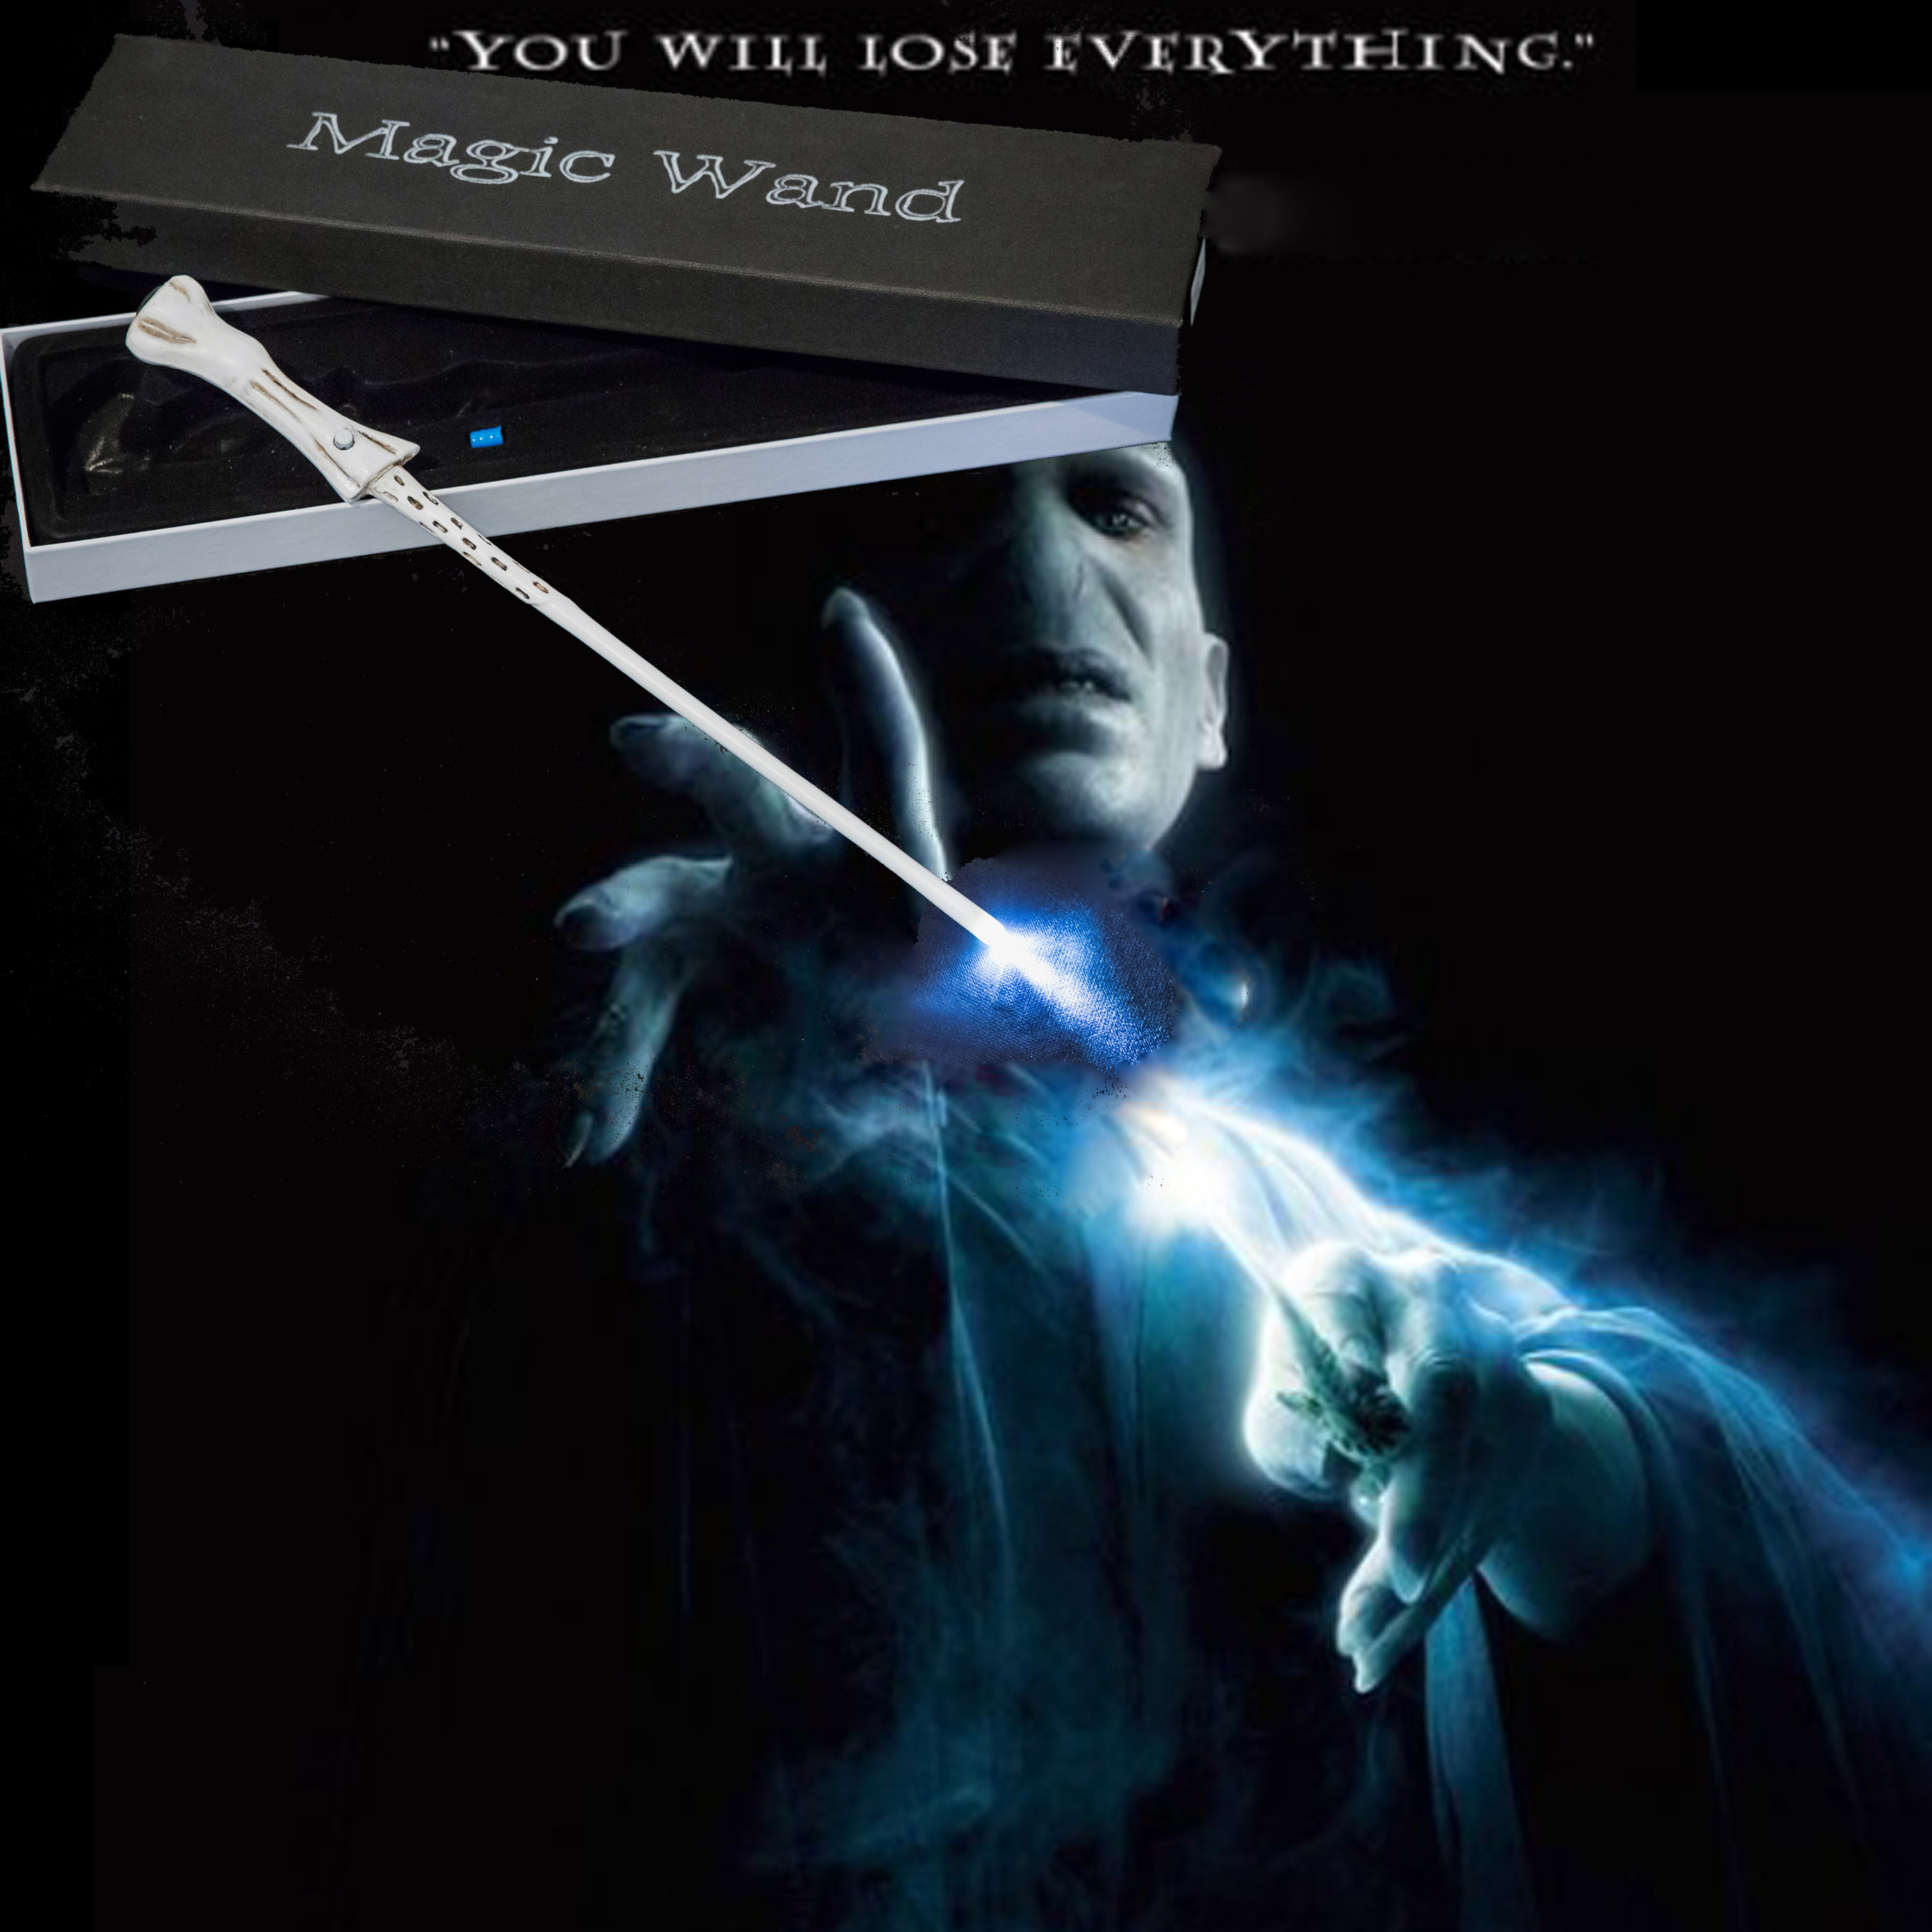 Action HP Harri Wands Toys 36 CM Glowing Metal Magic Wand Hogwart Popular Gifts With Gift Box Cosplay Real Magic Effects Kid Toy